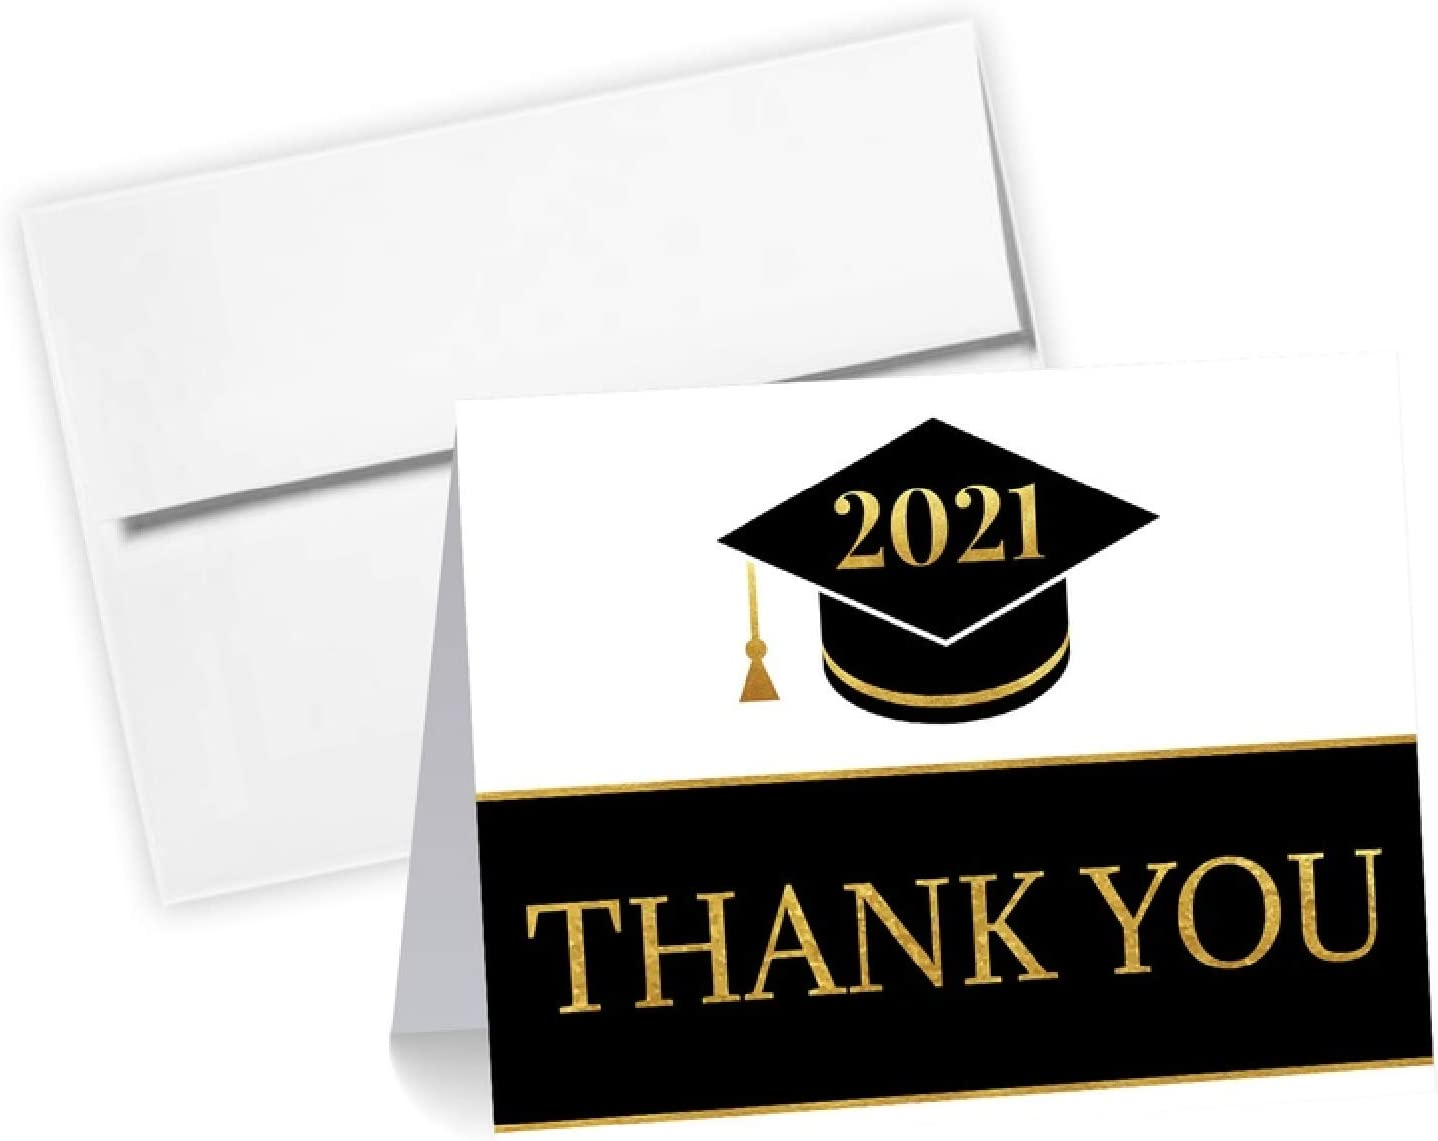 High School Graduation Cards Class of 2019 College GRADUATION CAPS Personalized Graduation Thank You Cards Set with Envelopes